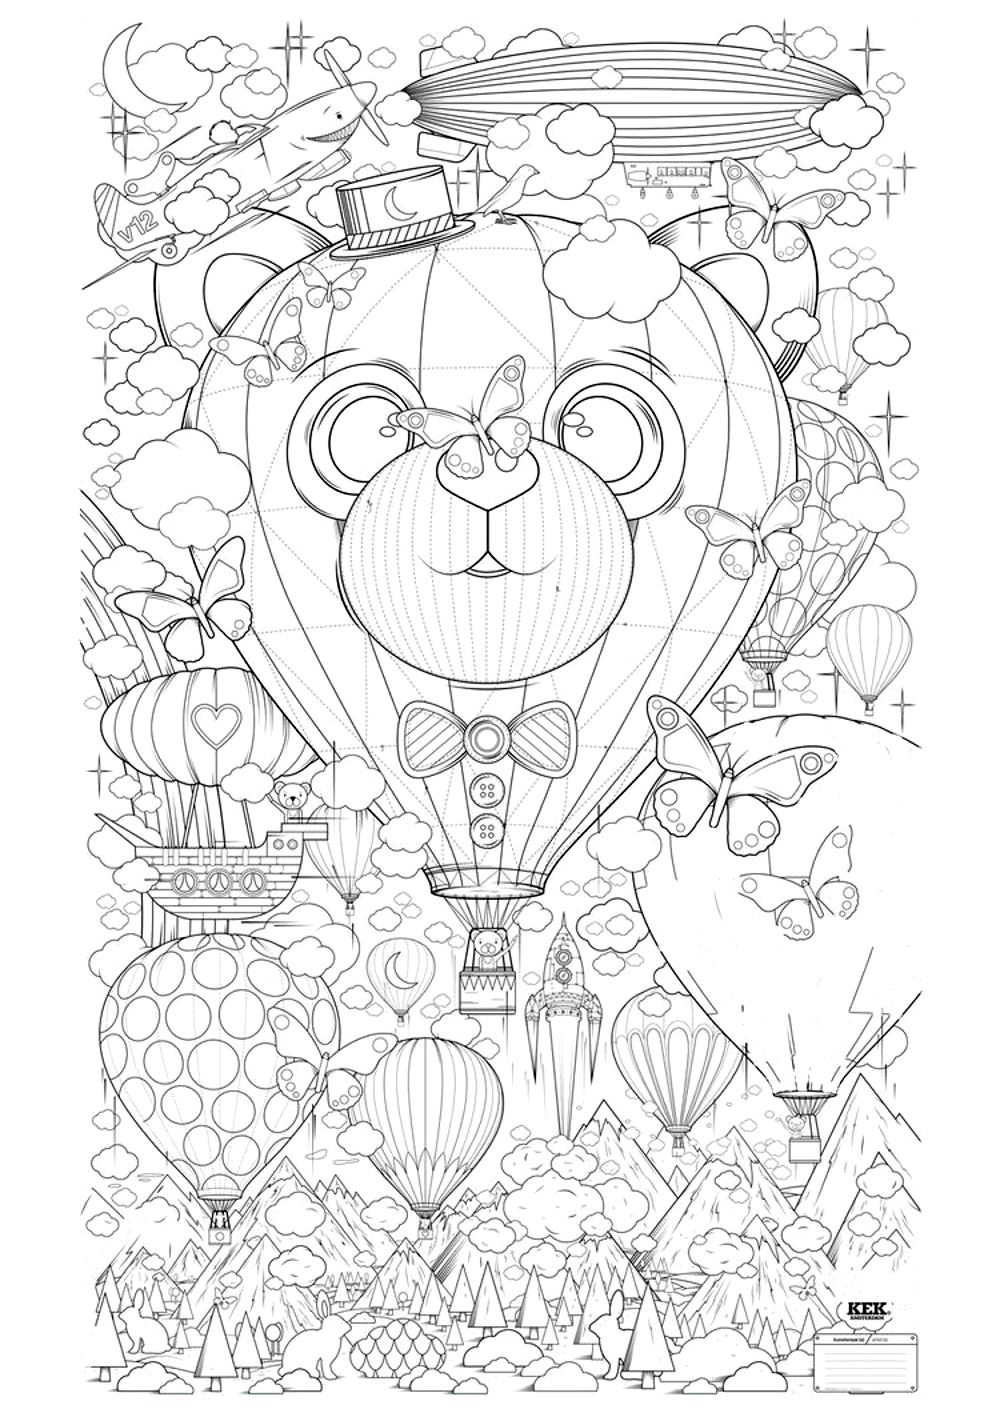 Hot Air Balloon Zen Anti Stress To Print Anti Stress Adult Coloring Pages